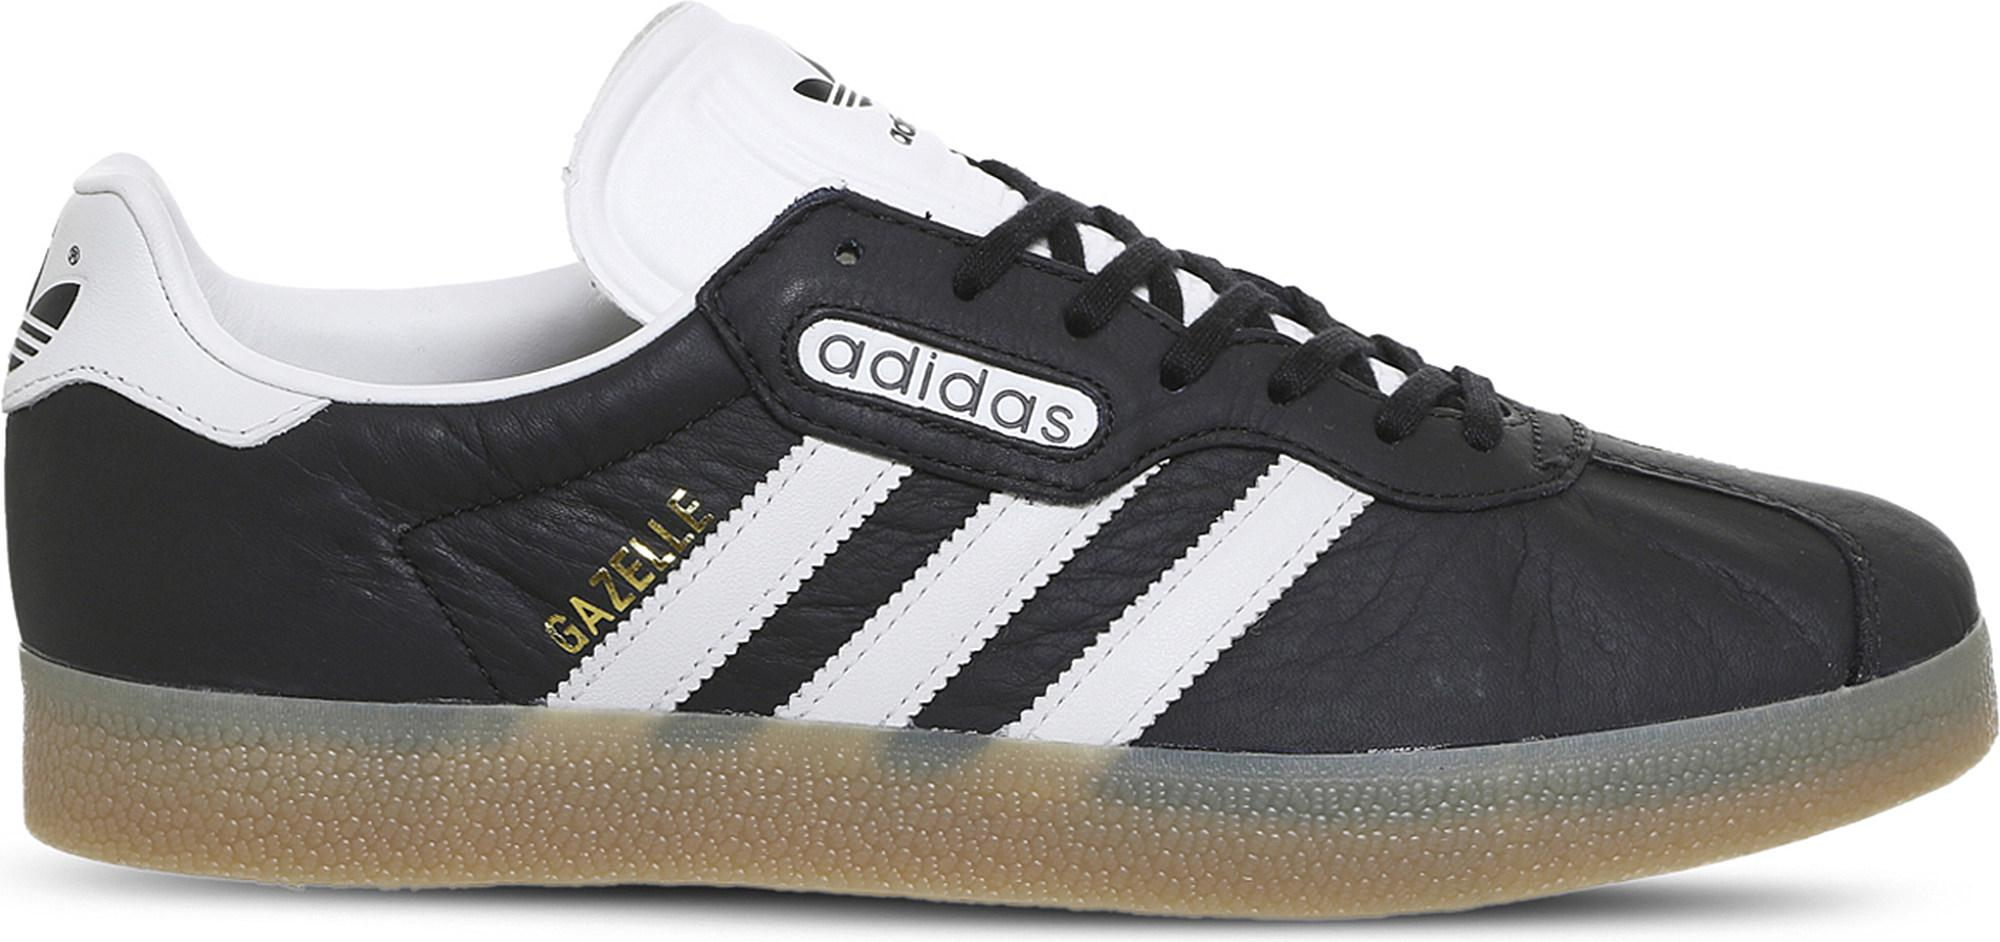 premium selection c4426 bcf7f Gallery. Previously sold at Selfridges · Mens Adidas Gazelle ...